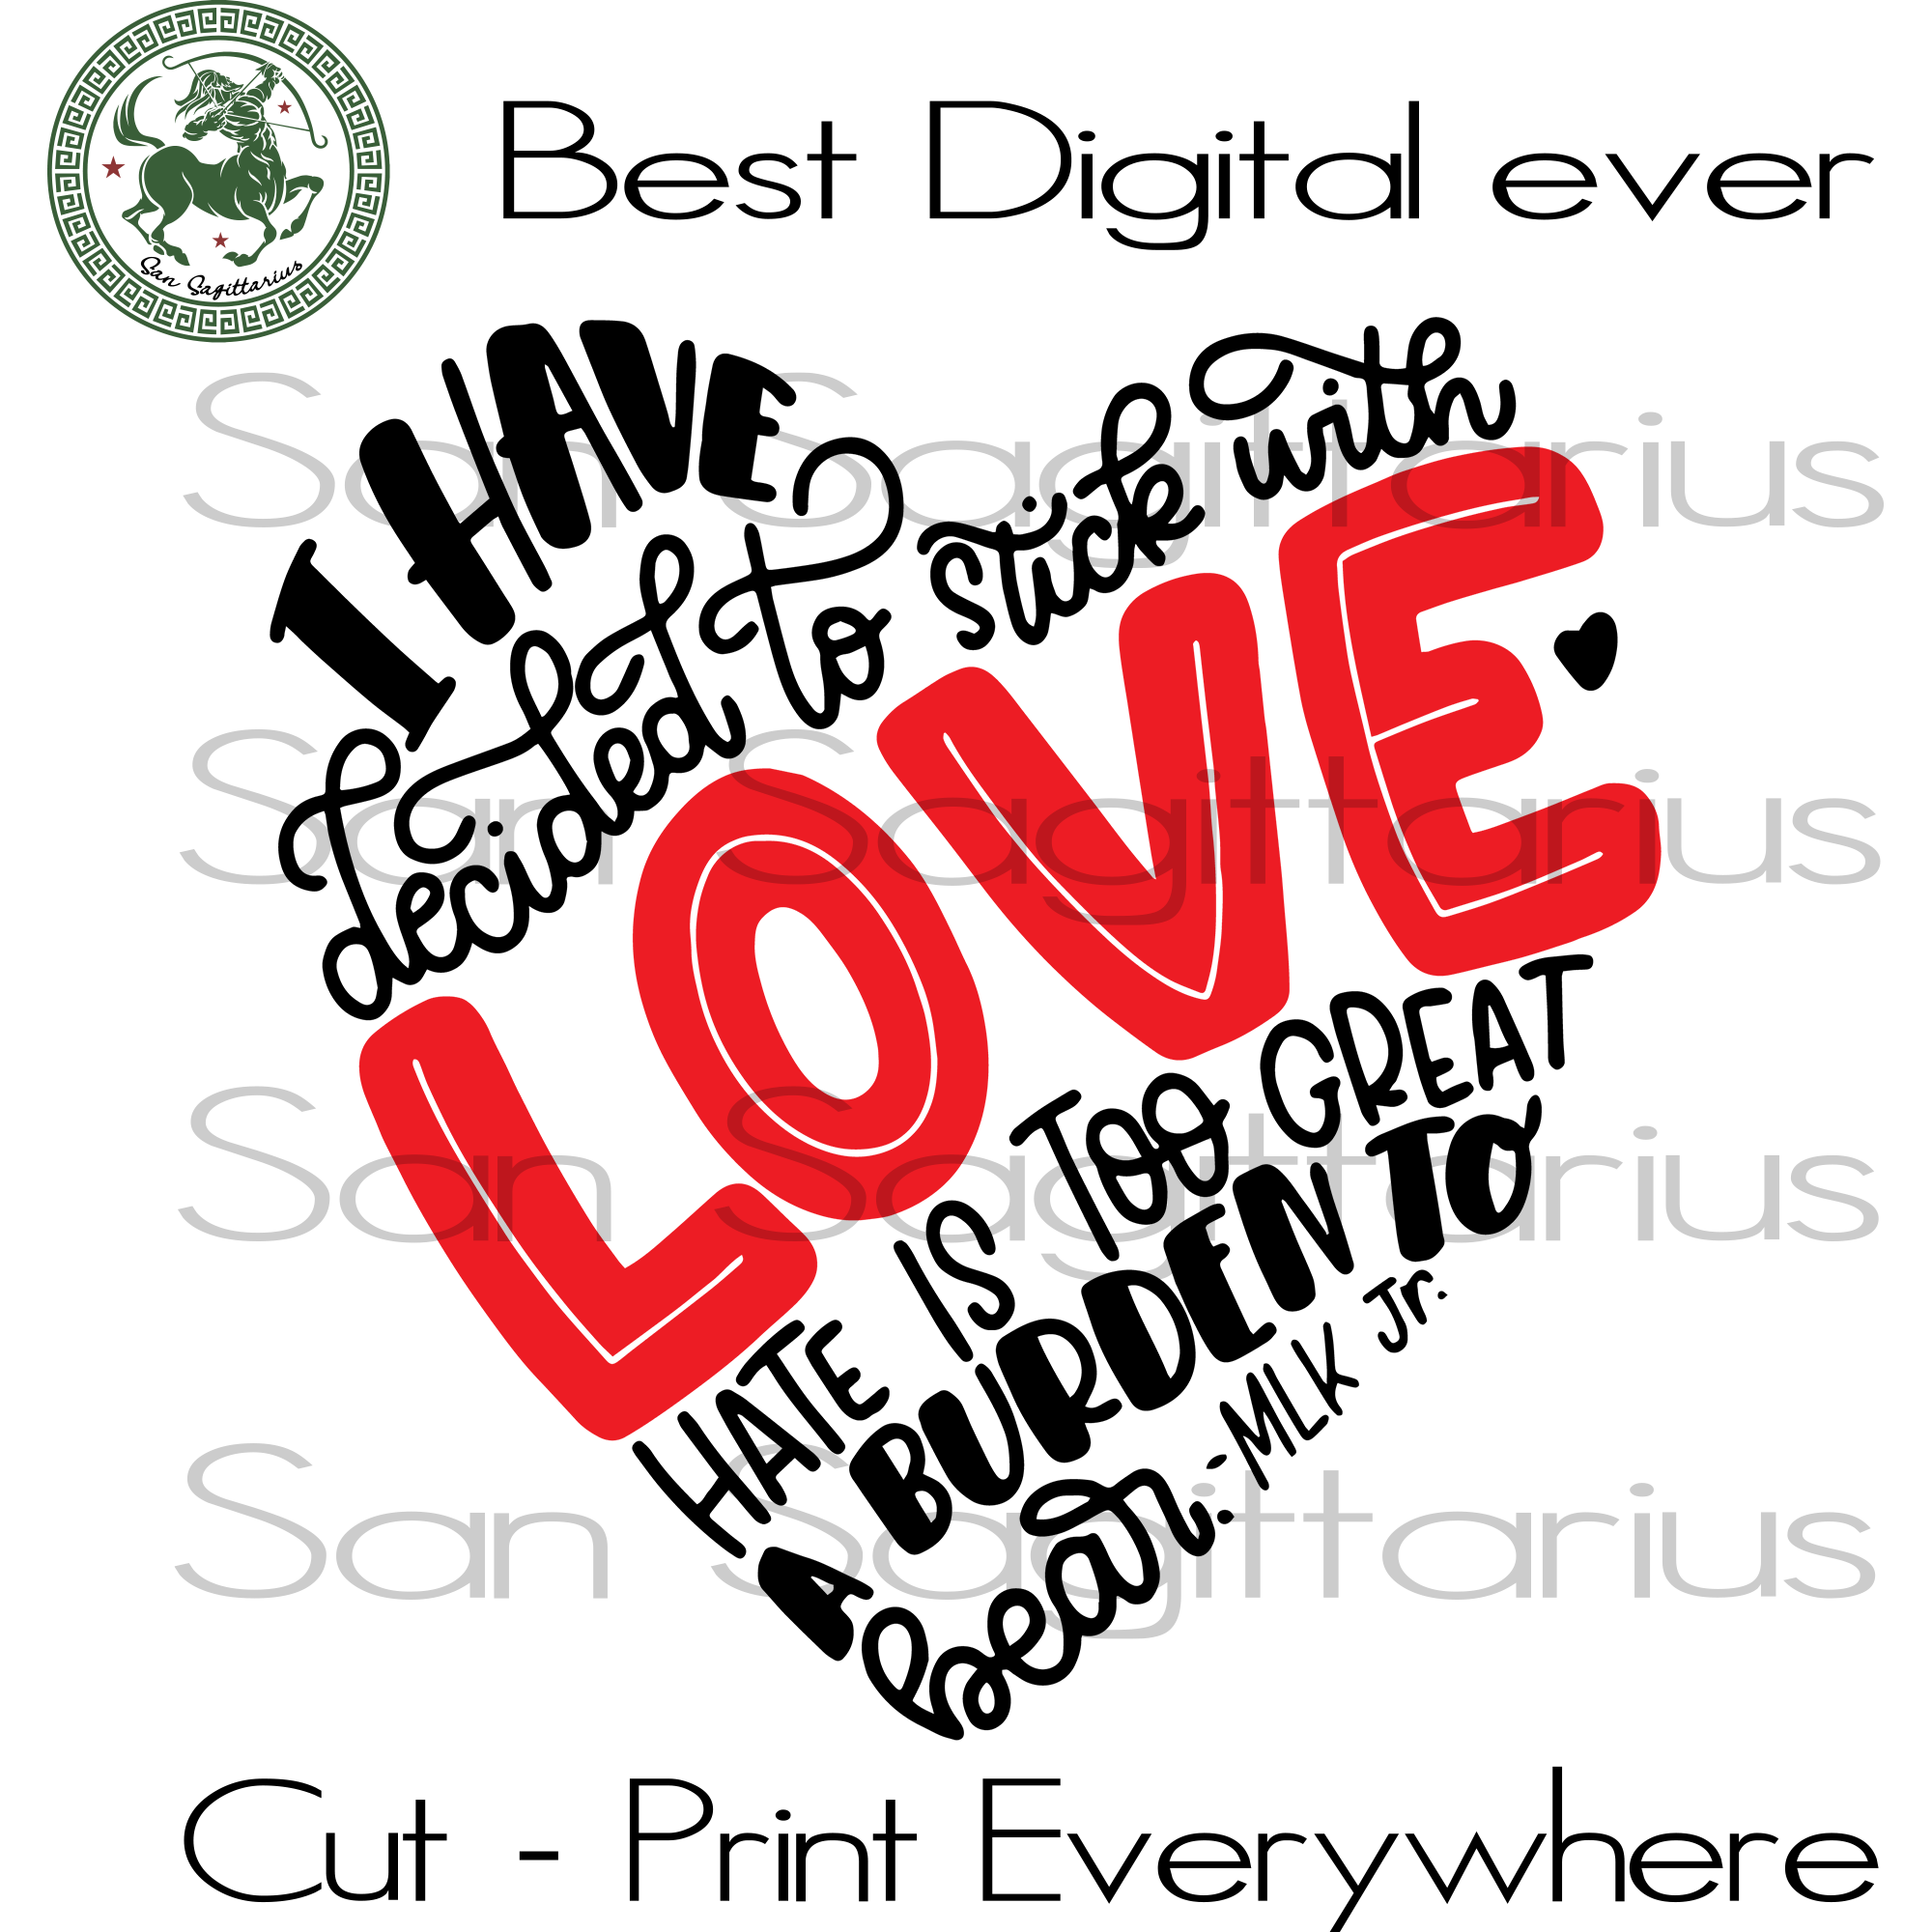 I have decided to stick with love hate it too great a burden to bear SVG Files For Cricut Silhouette Instant Download | San Sagittarius